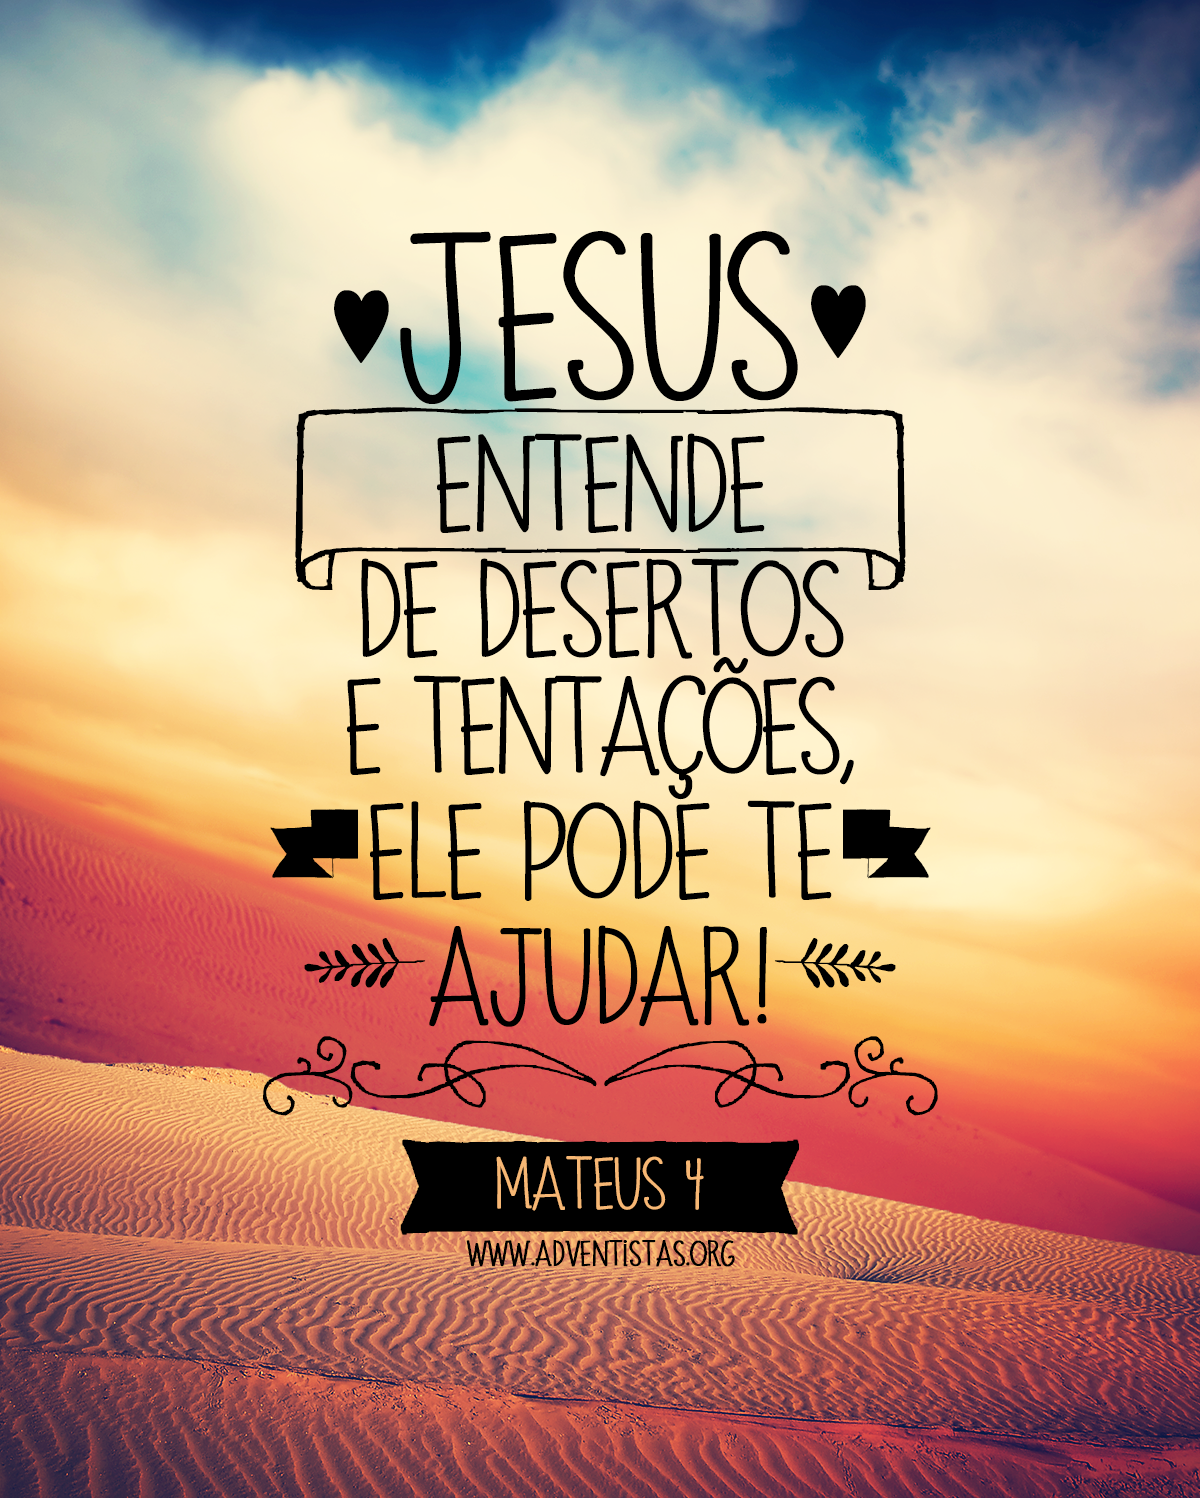 Rpsp Biblia Versiculo Quotes Frases Deus Sabe De Todas As